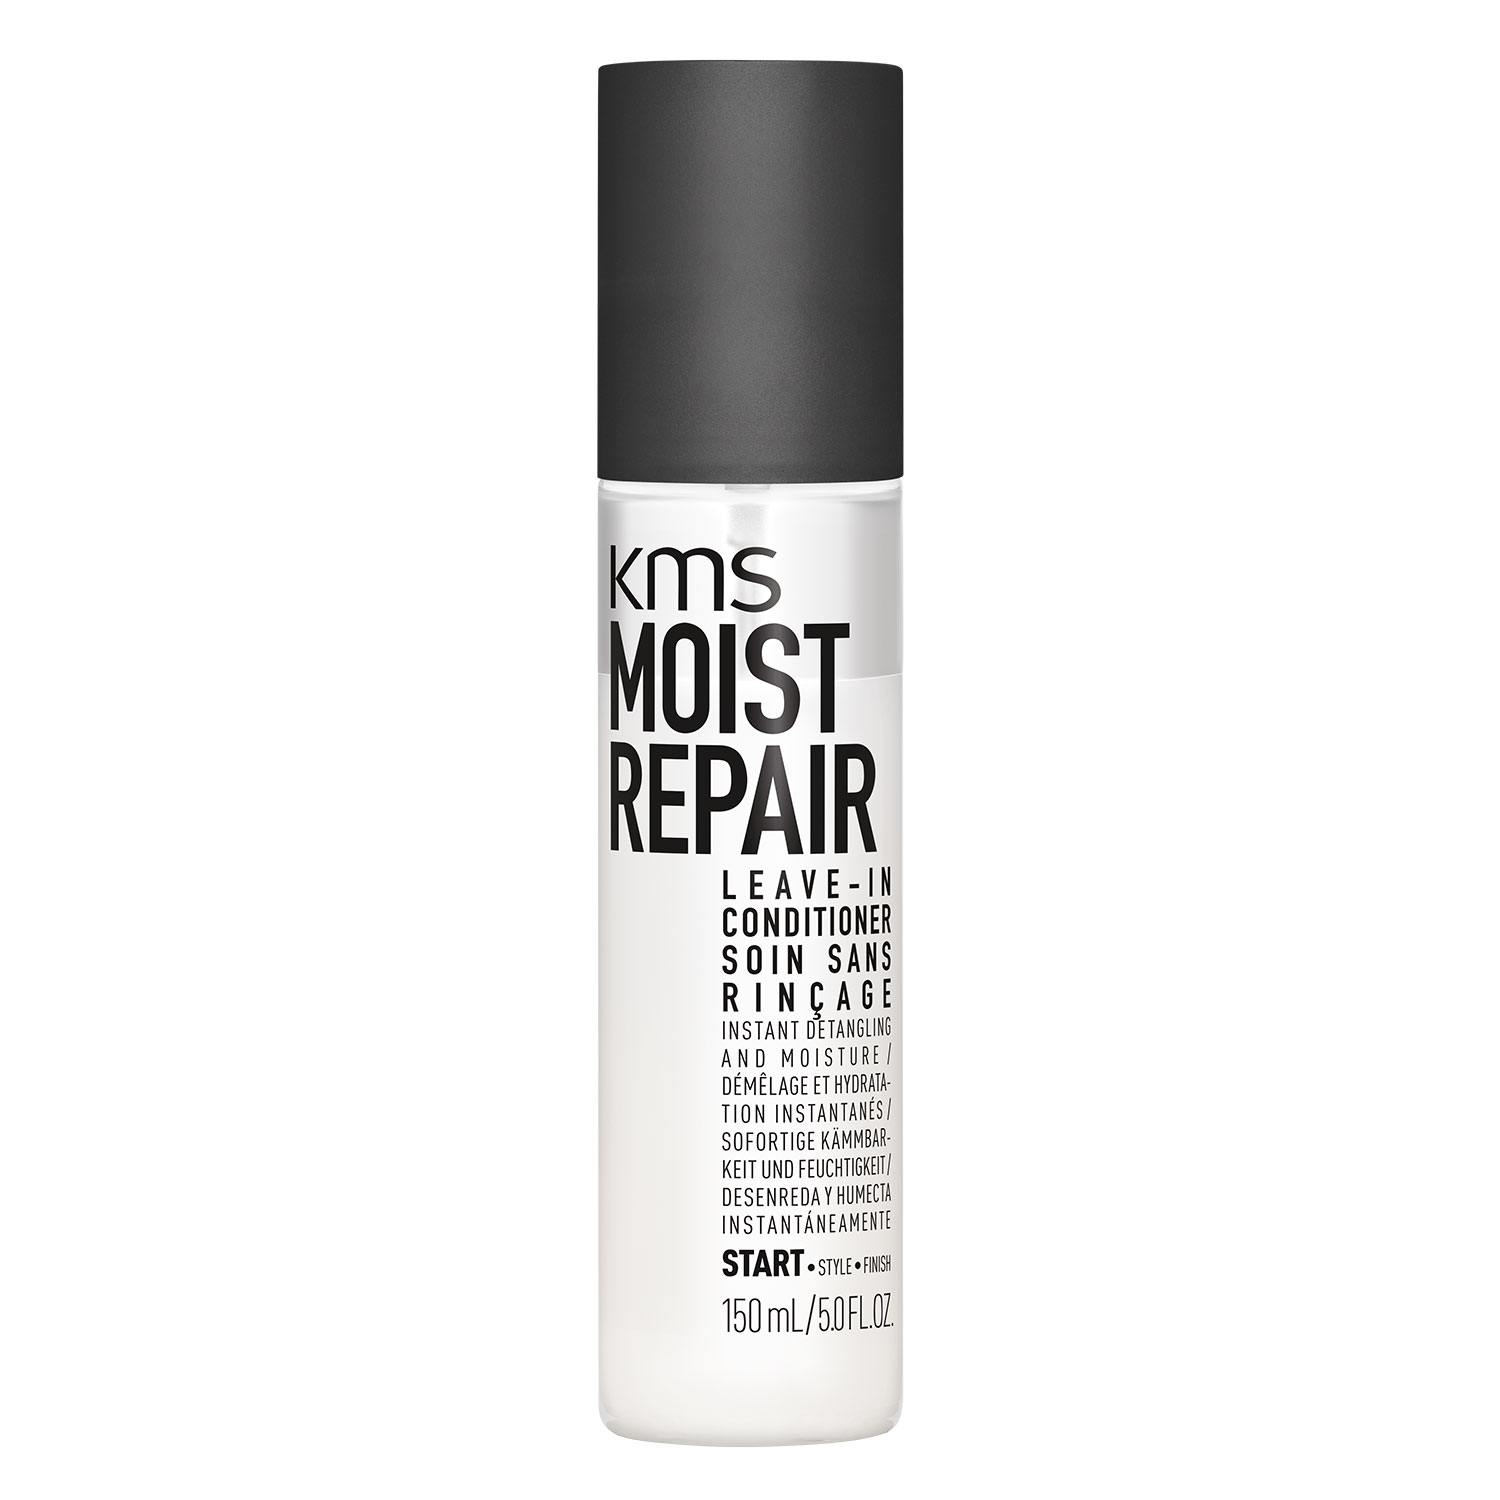 Moistrepair - Leave-In Conditioner Spray - 150ml